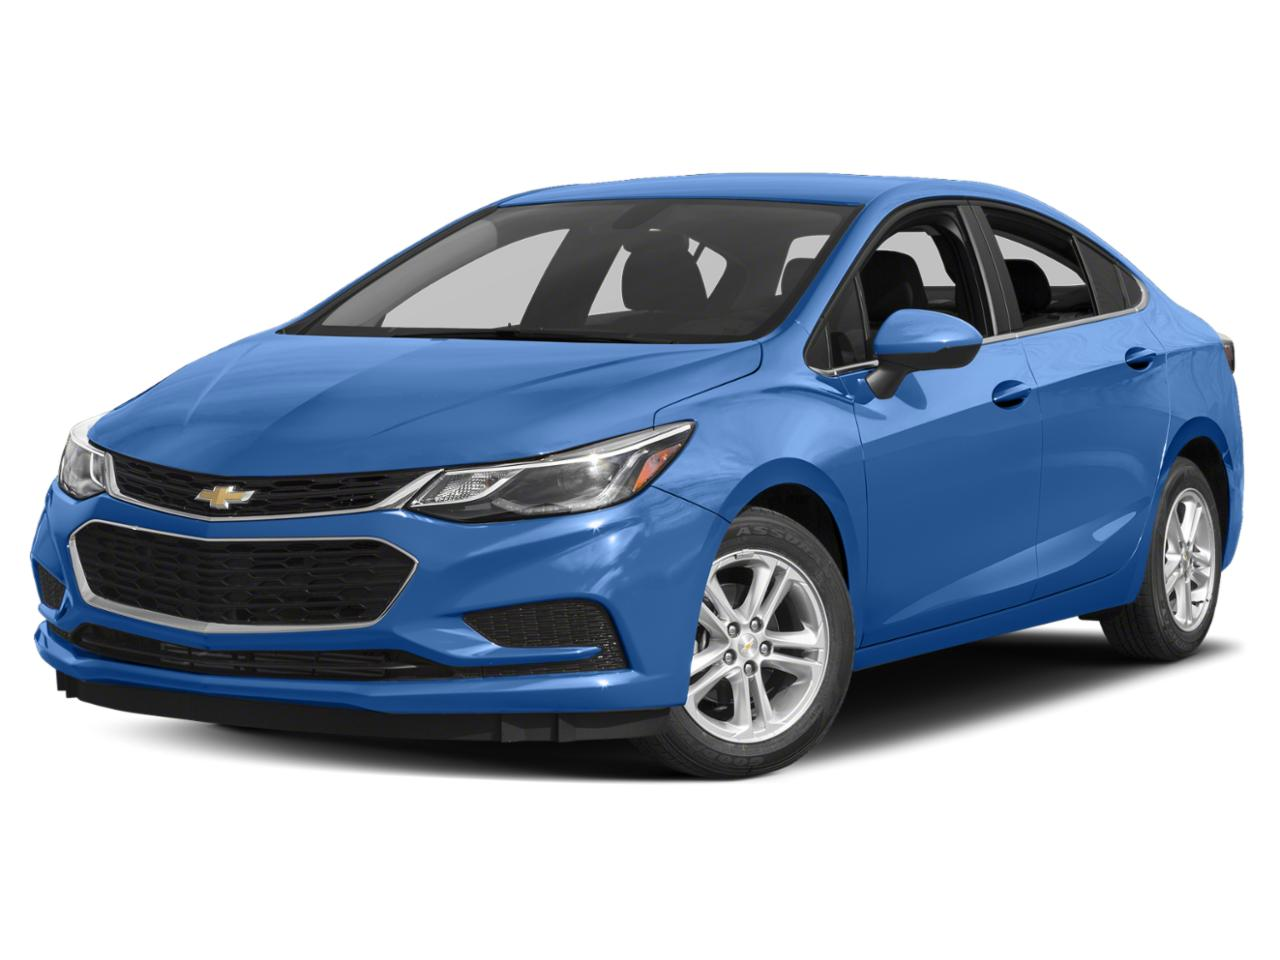 2018 Chevrolet Cruze Vehicle Photo in Van Nuys, CA 91401